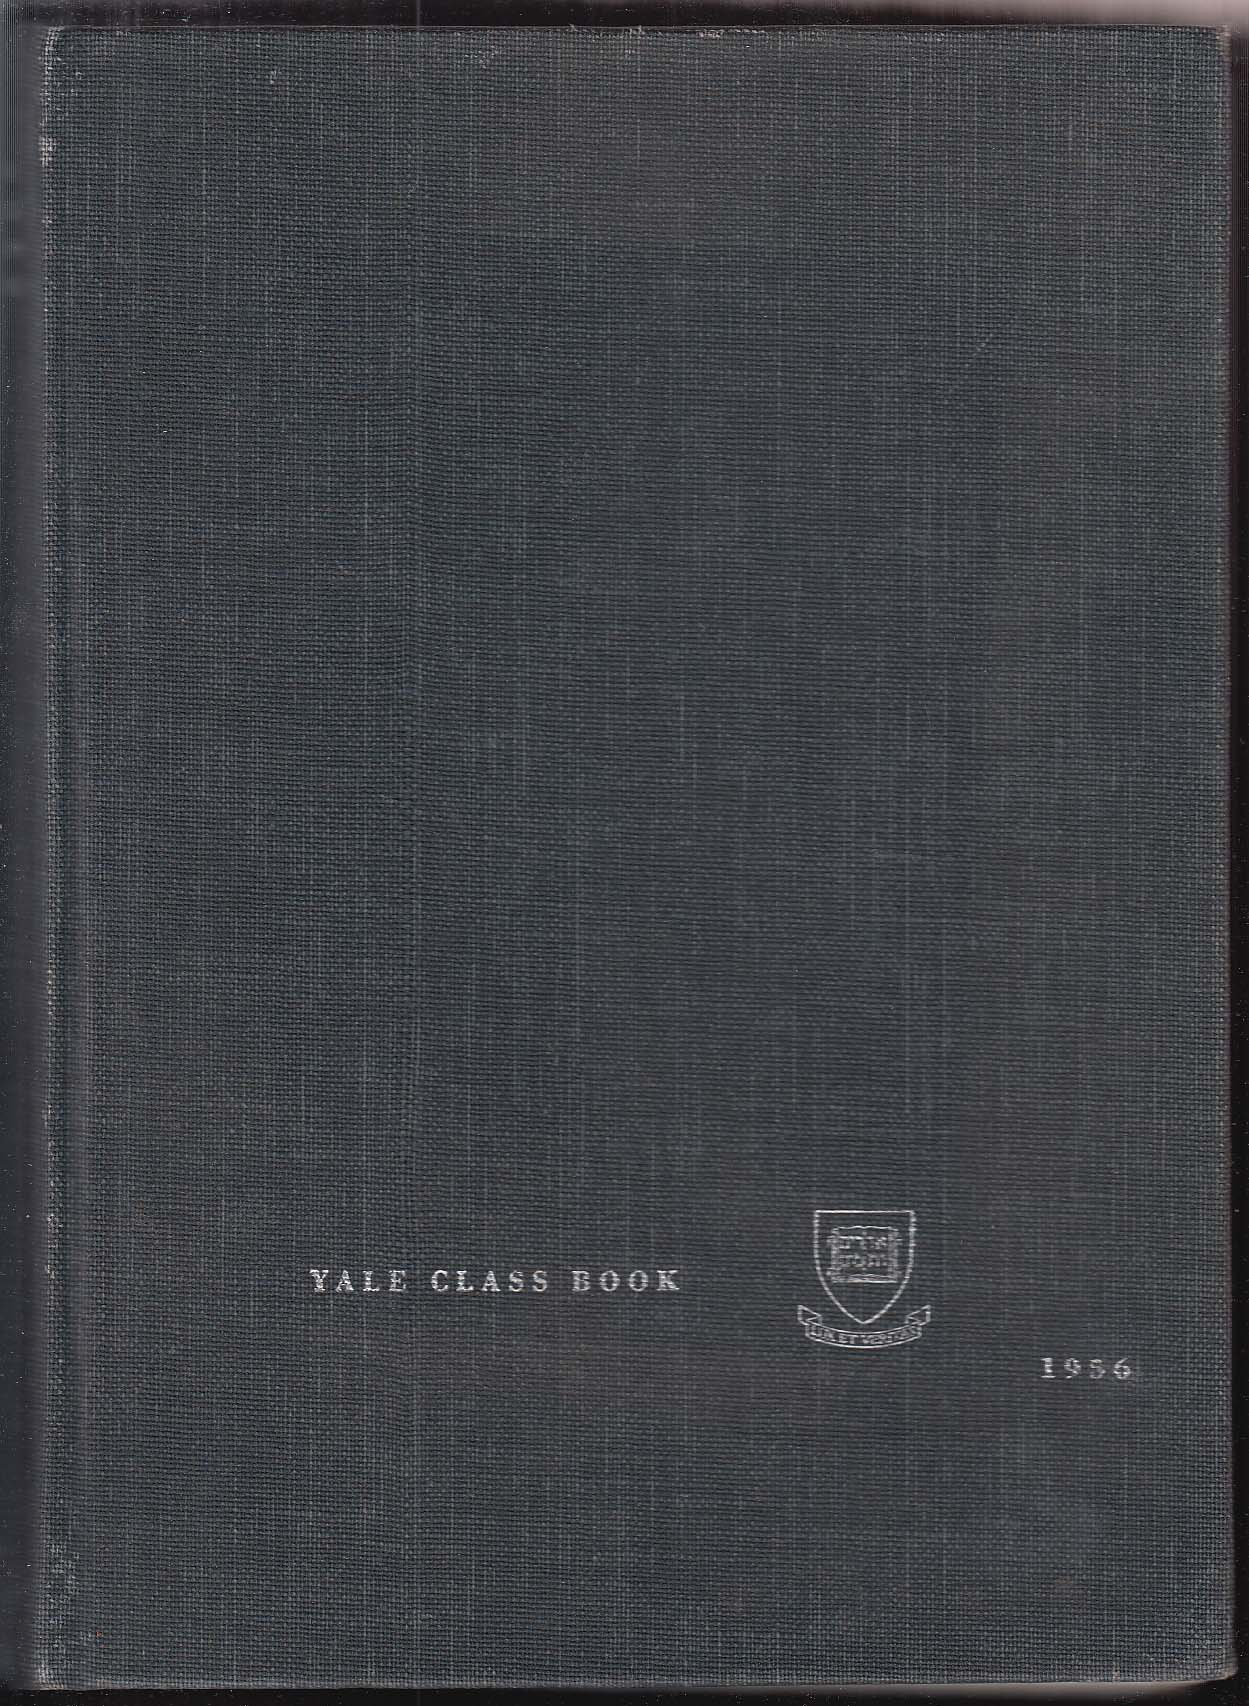 Yale Class Book 1956 Yearbook New Haven CT James Jeffords John Tunney